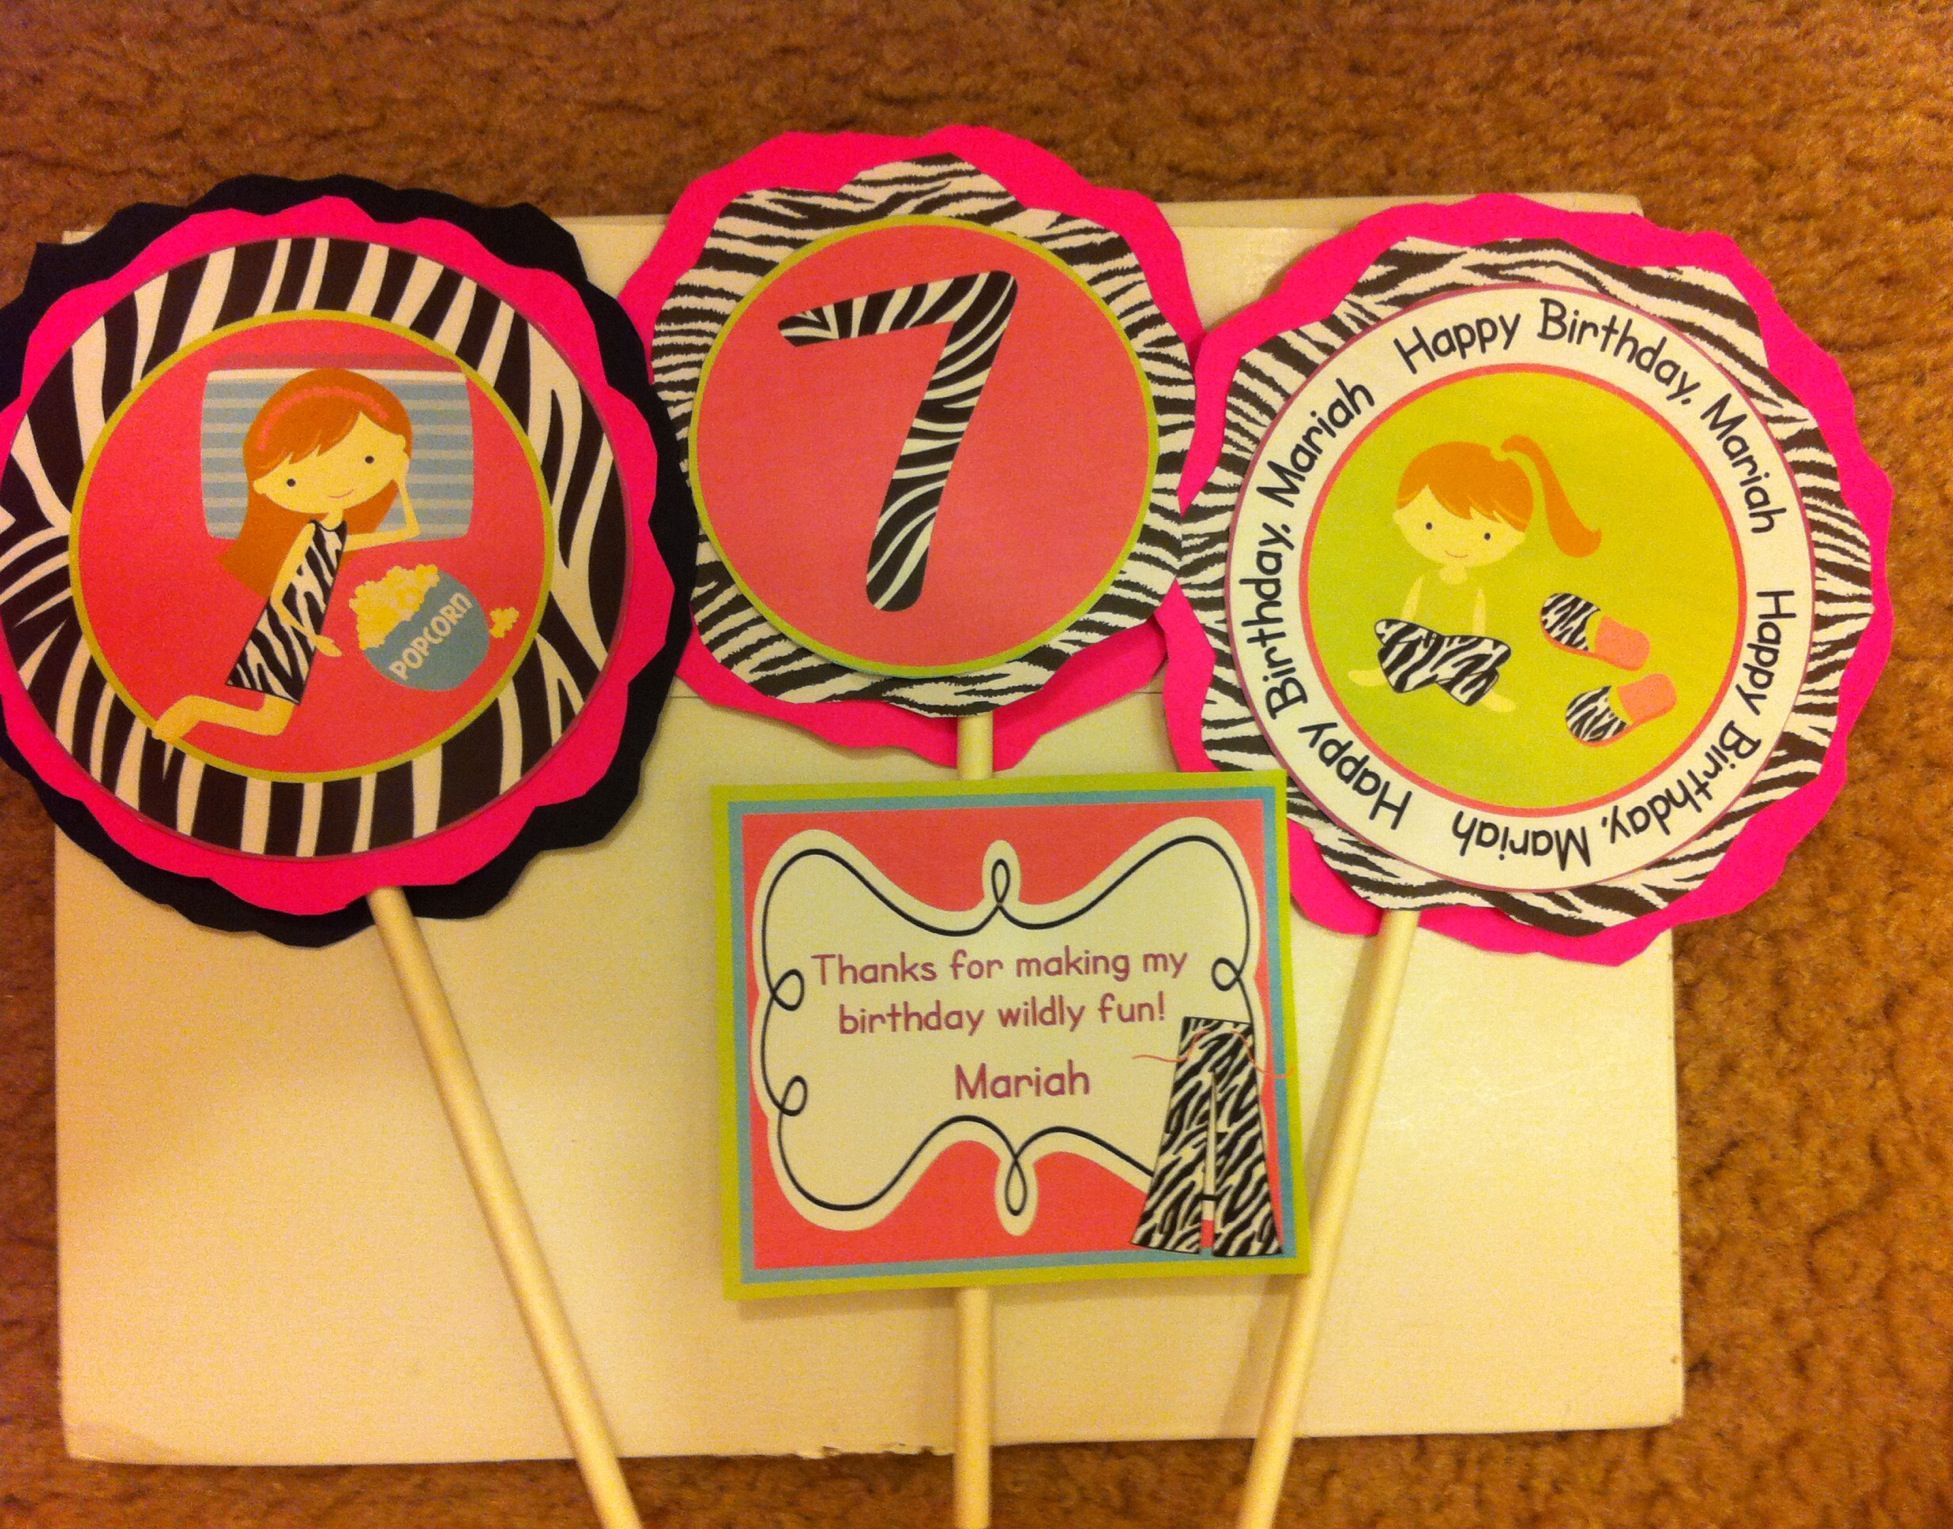 Birthday party decor for a pink zebra theme party Table toppers